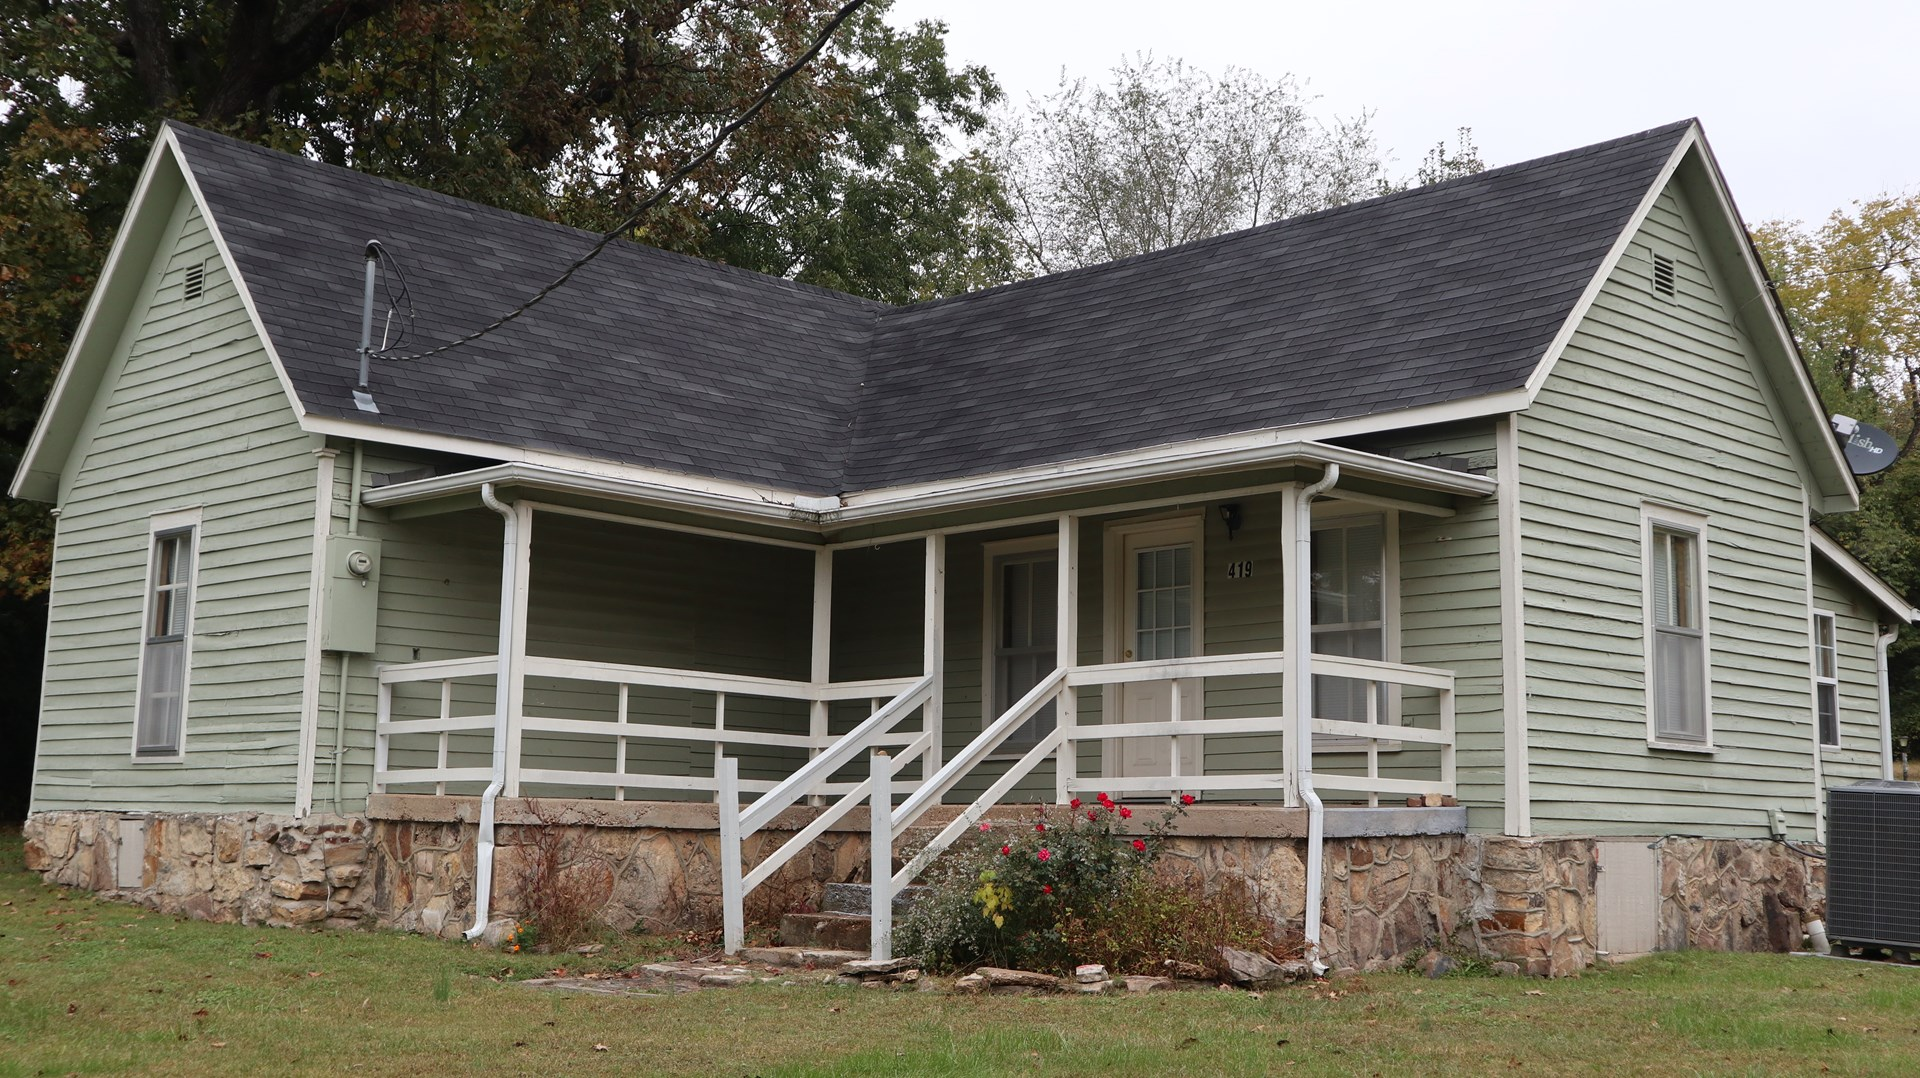 Older Ozarks Home for sale in Salem Arkansas